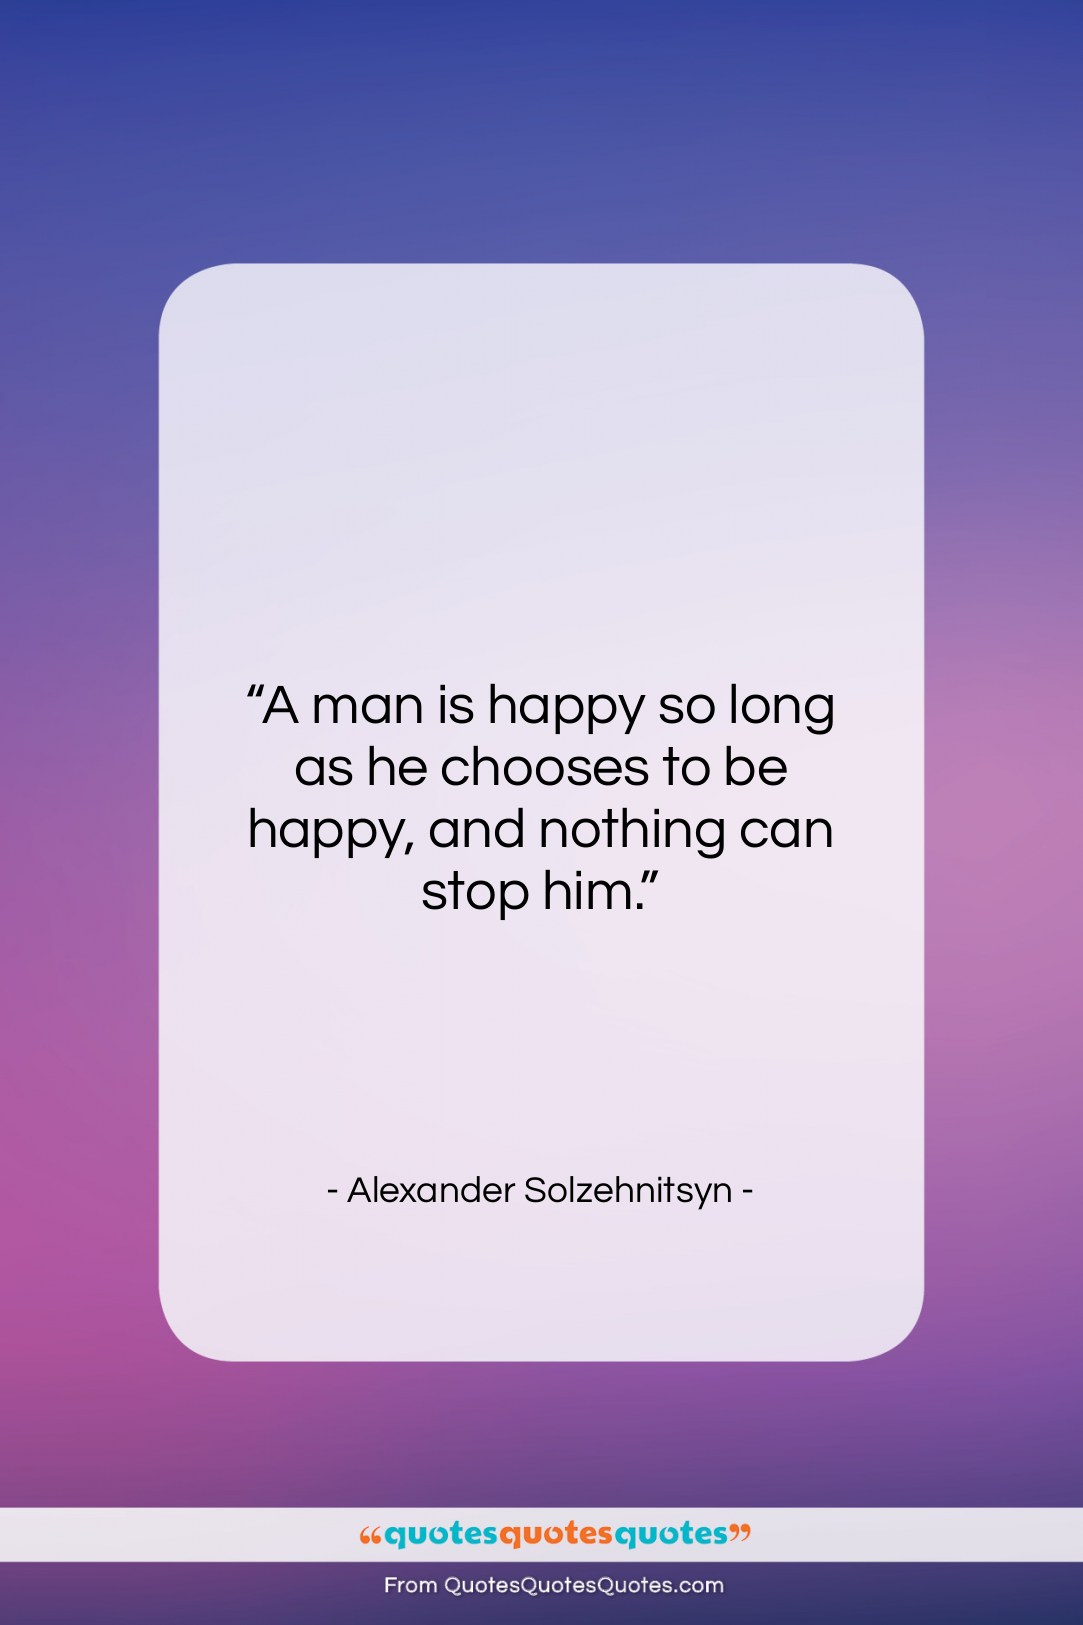 """Alexander Solzehnitsyn quote: """"A man is happy so long as…""""- at QuotesQuotesQuotes.com"""